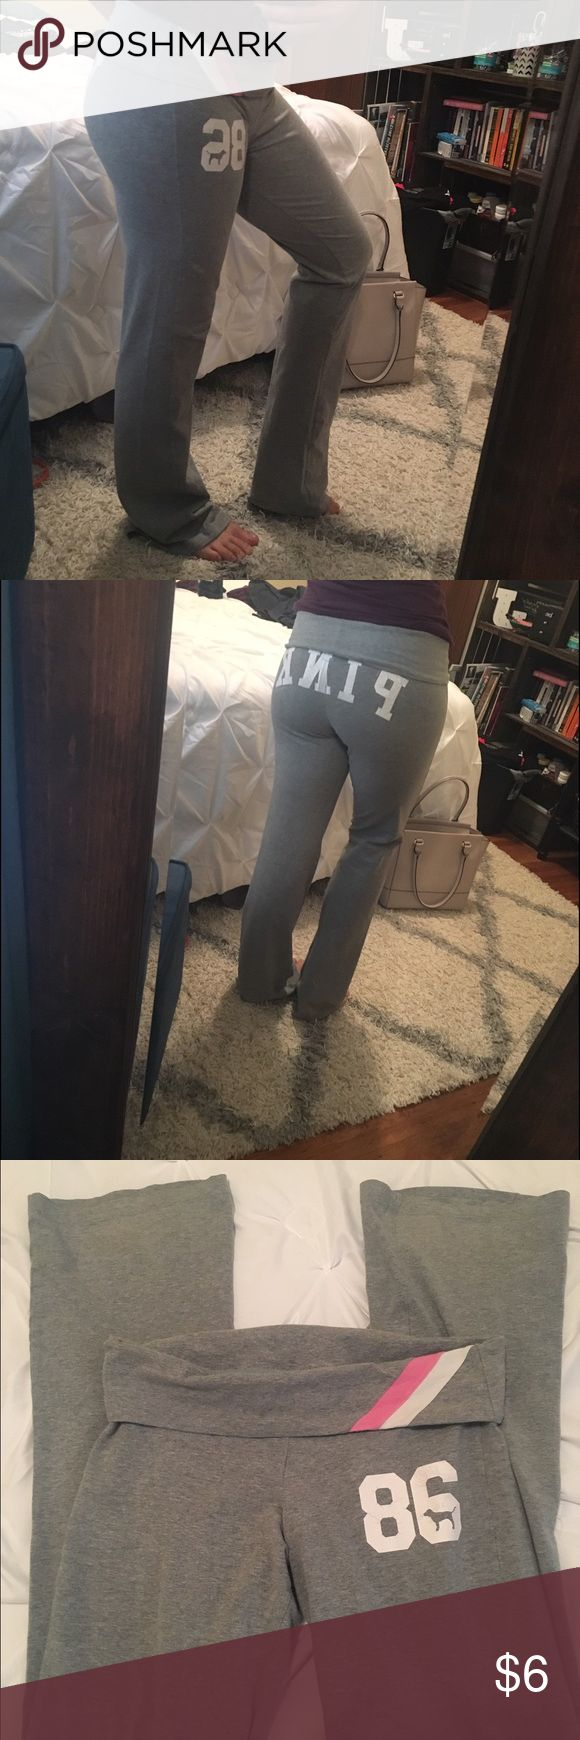 Victoria's Secret Pink Gray yoga fold pants Good condition; NO fraying at ends; stamped PINK on butt and 86 on front leg show signs of wear 😊 soft, comfy! Size XS PINK Victoria's Secret Pants Track Pants & Joggers